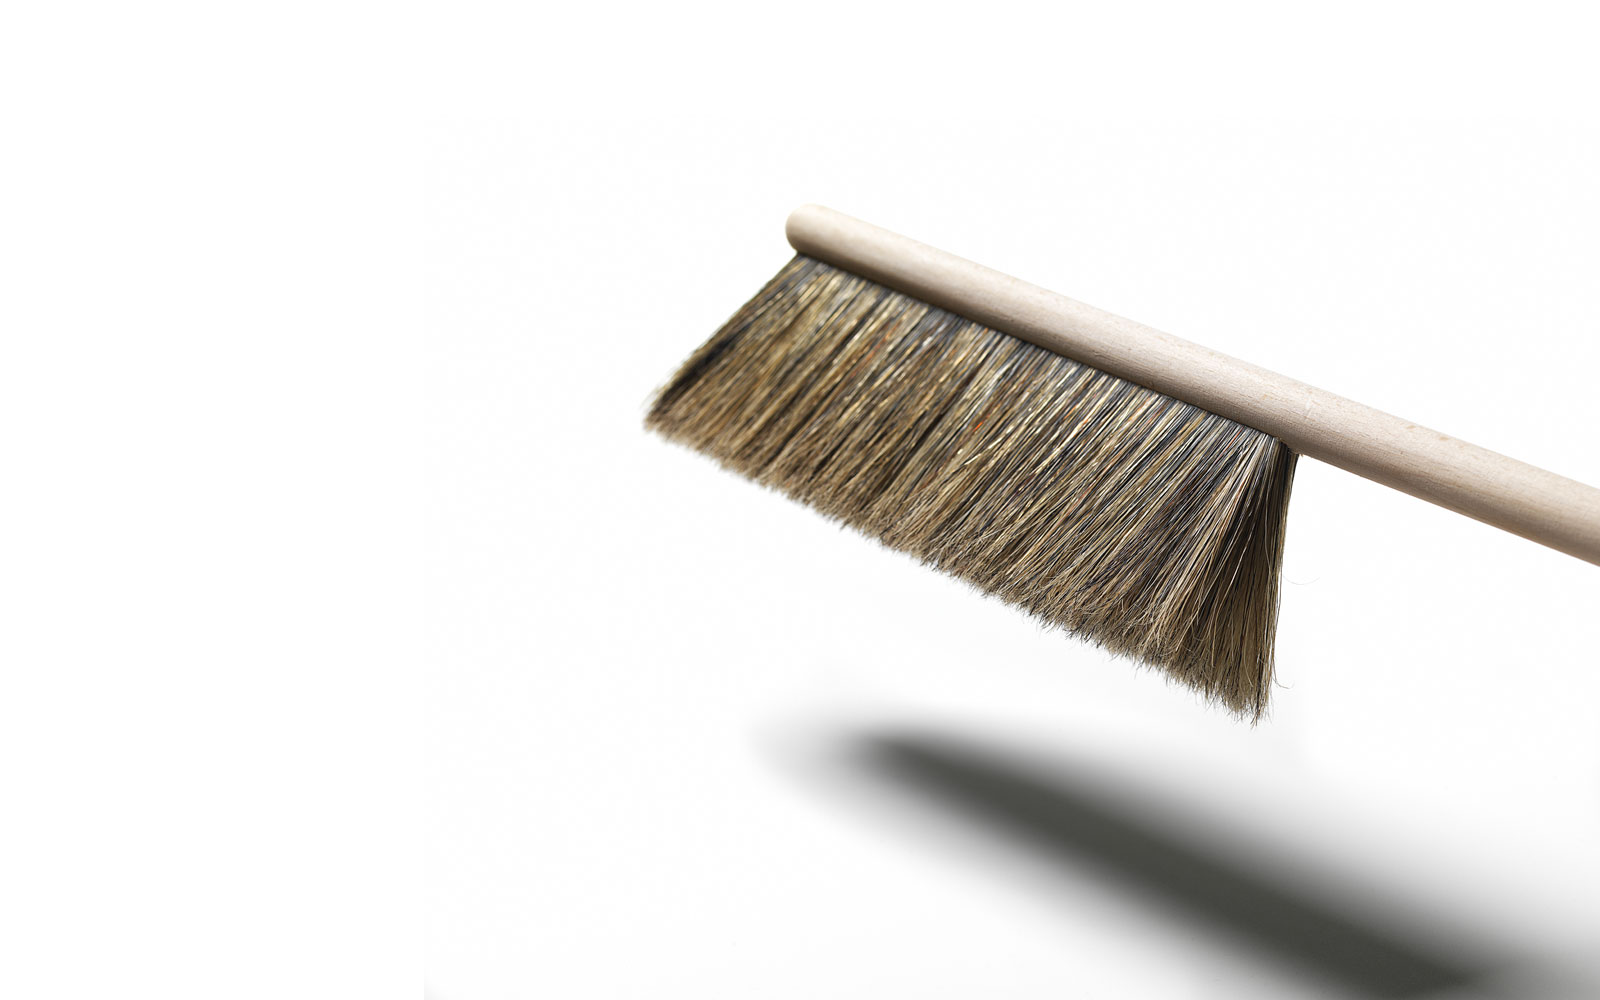 Dustpan broom